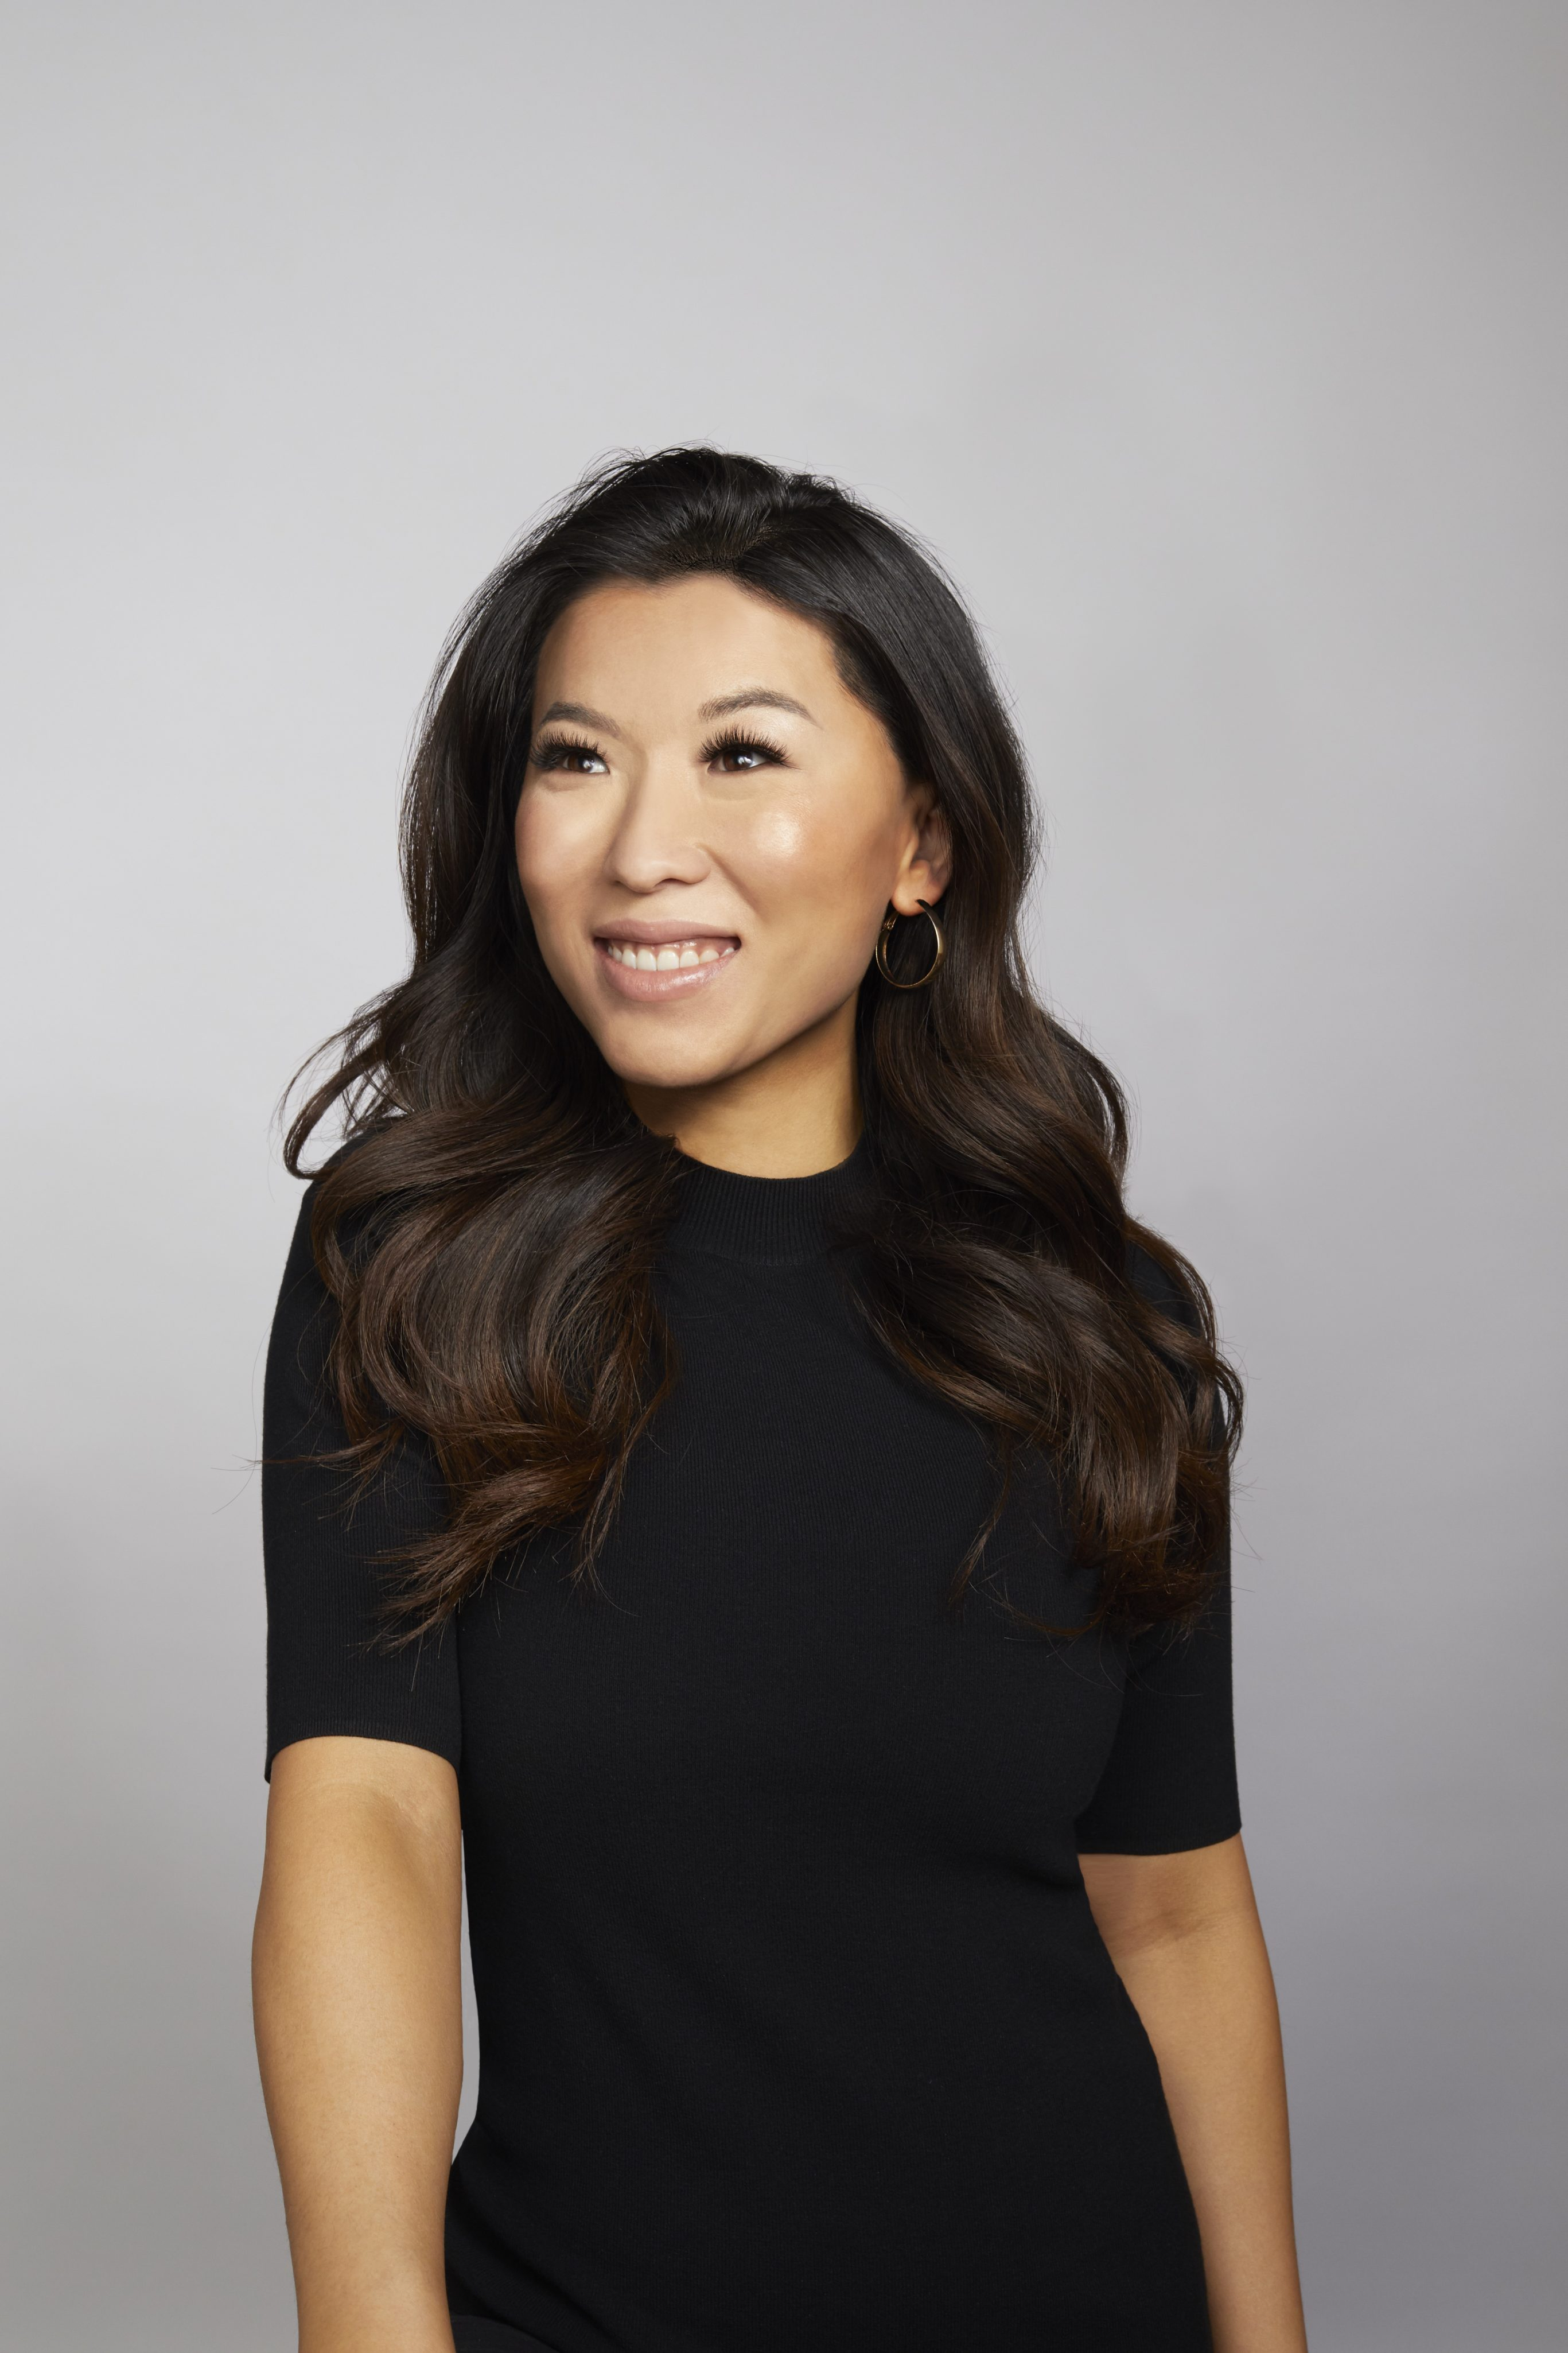 Velour Beauty Founder Mabel Lee on Being Her Own Role Model